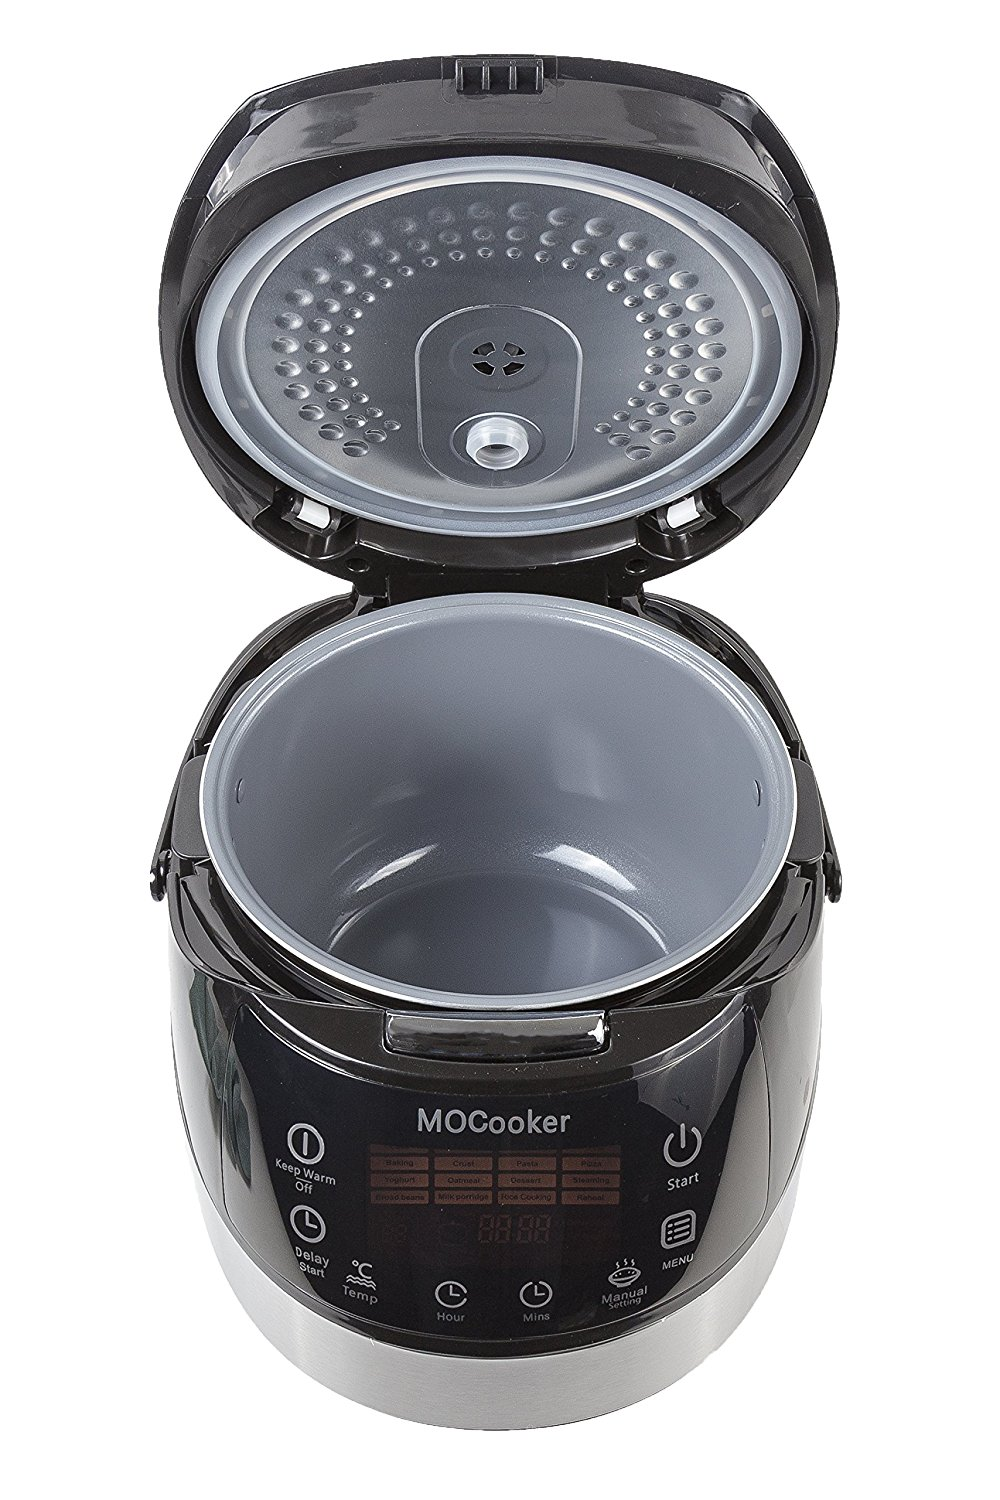 9 Non Teflon Rice Cookers With Reviews And Easy To Use